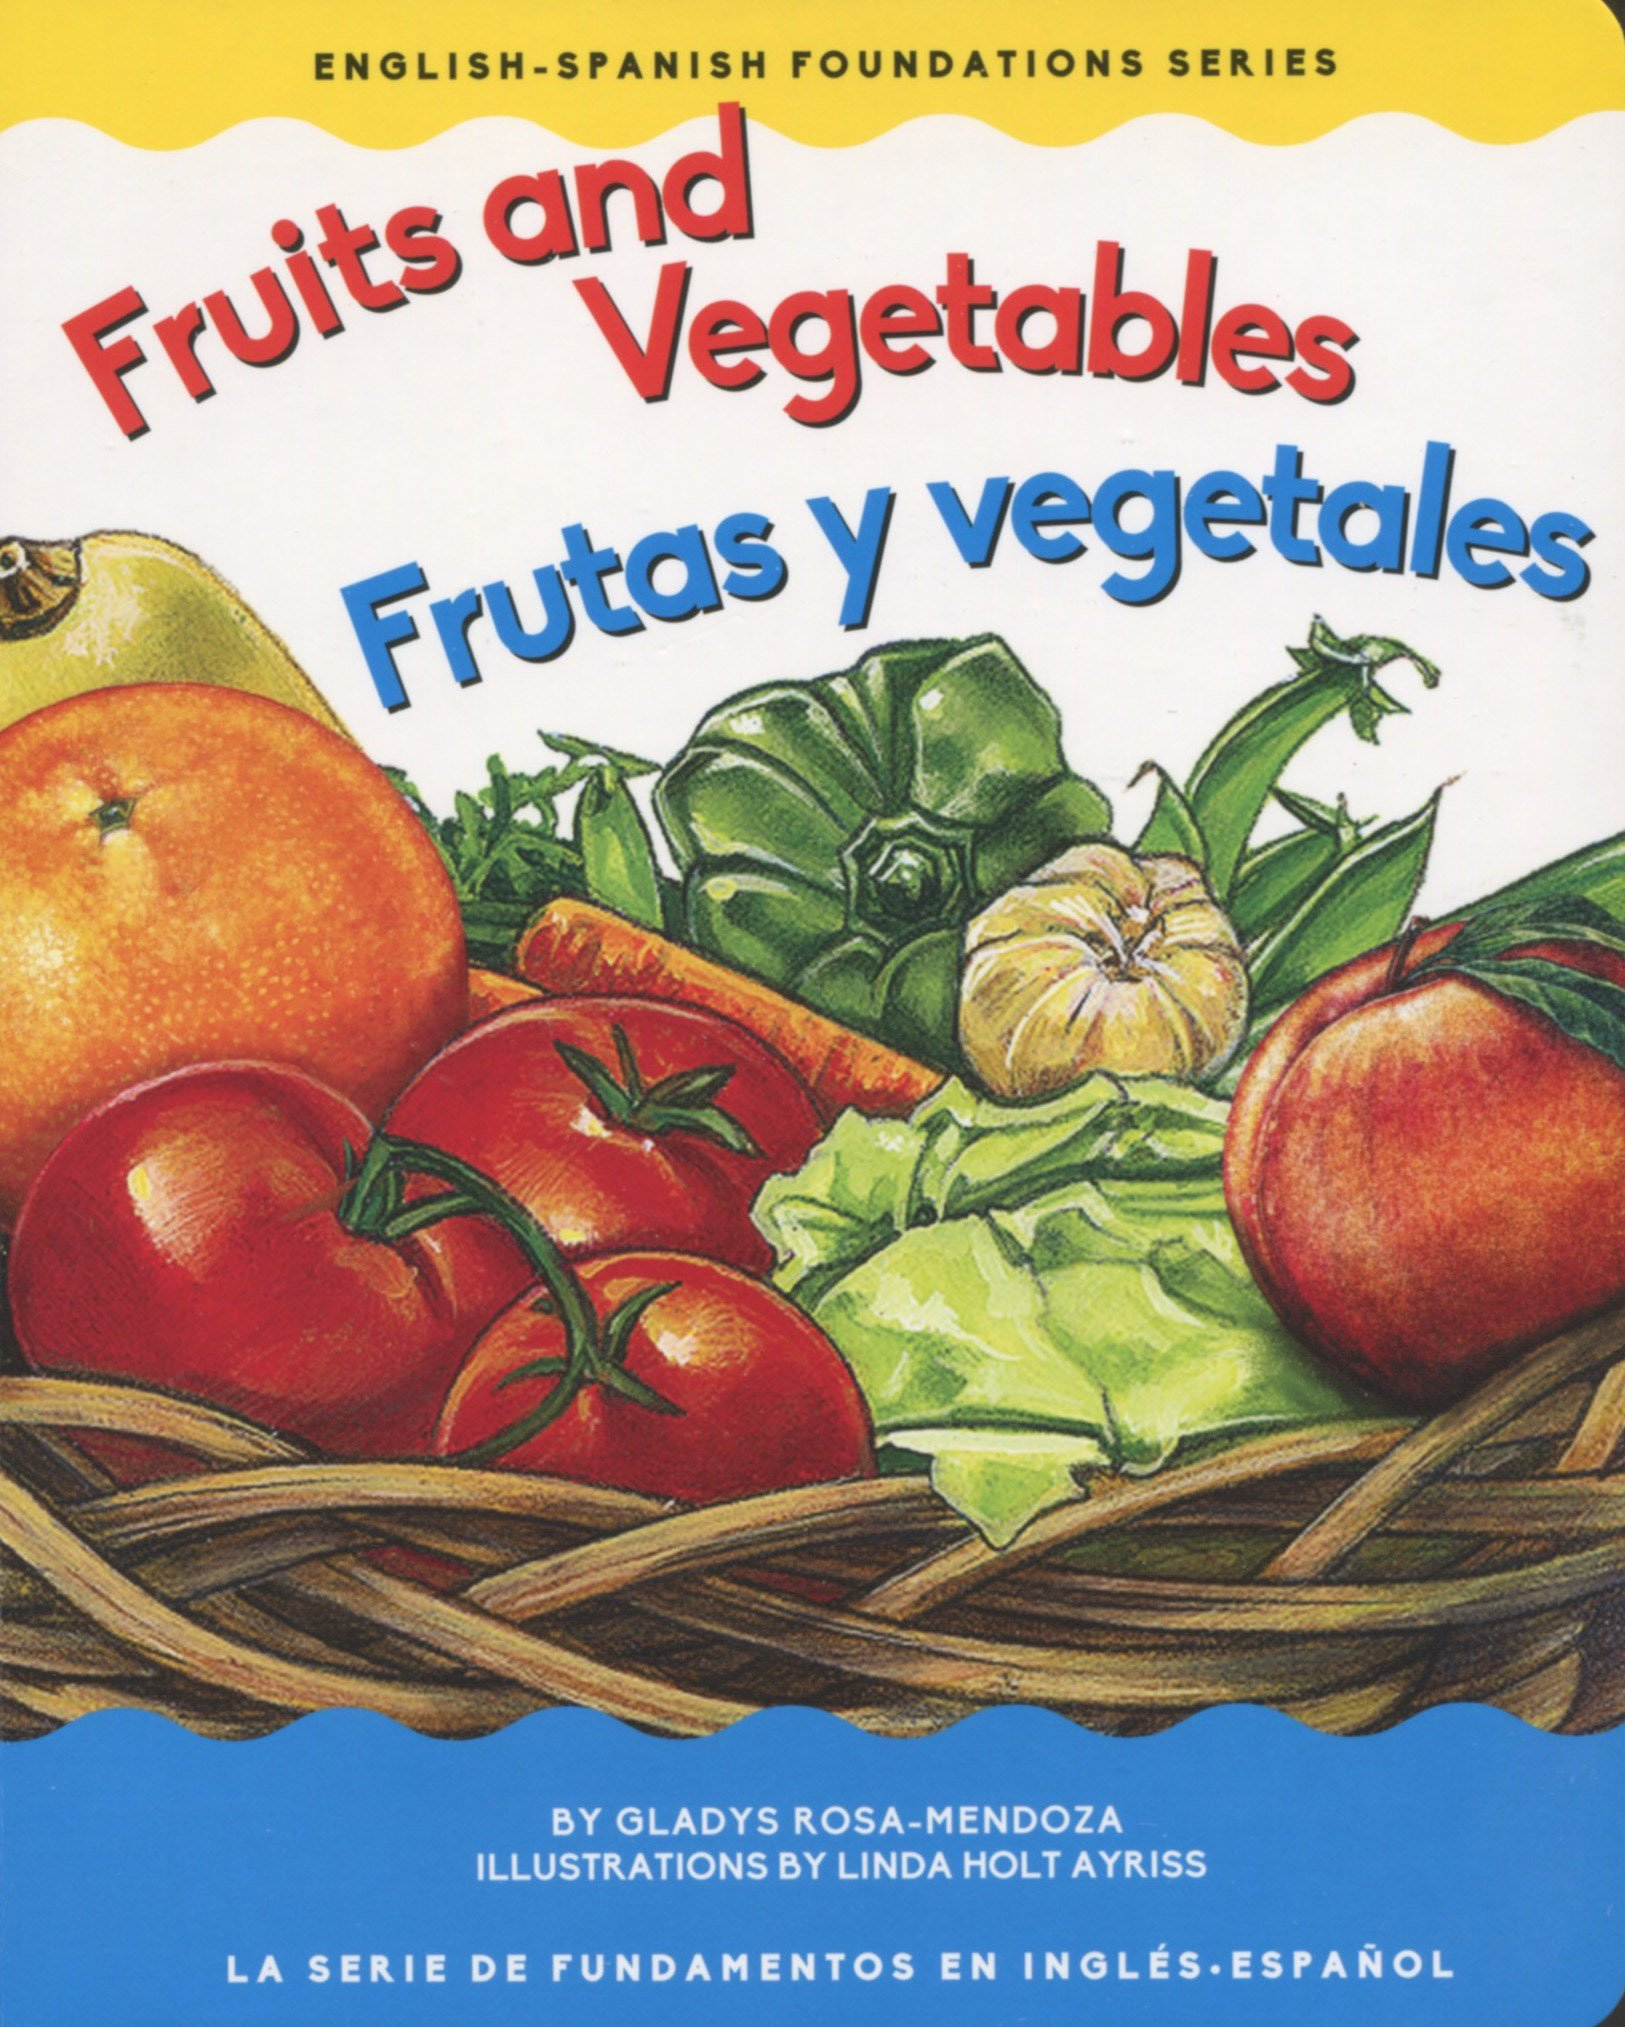 Fruits and Vegetables / Frutas y vegetales (English-Spanish Foundations Series) (English and Spanish Edition) pdf